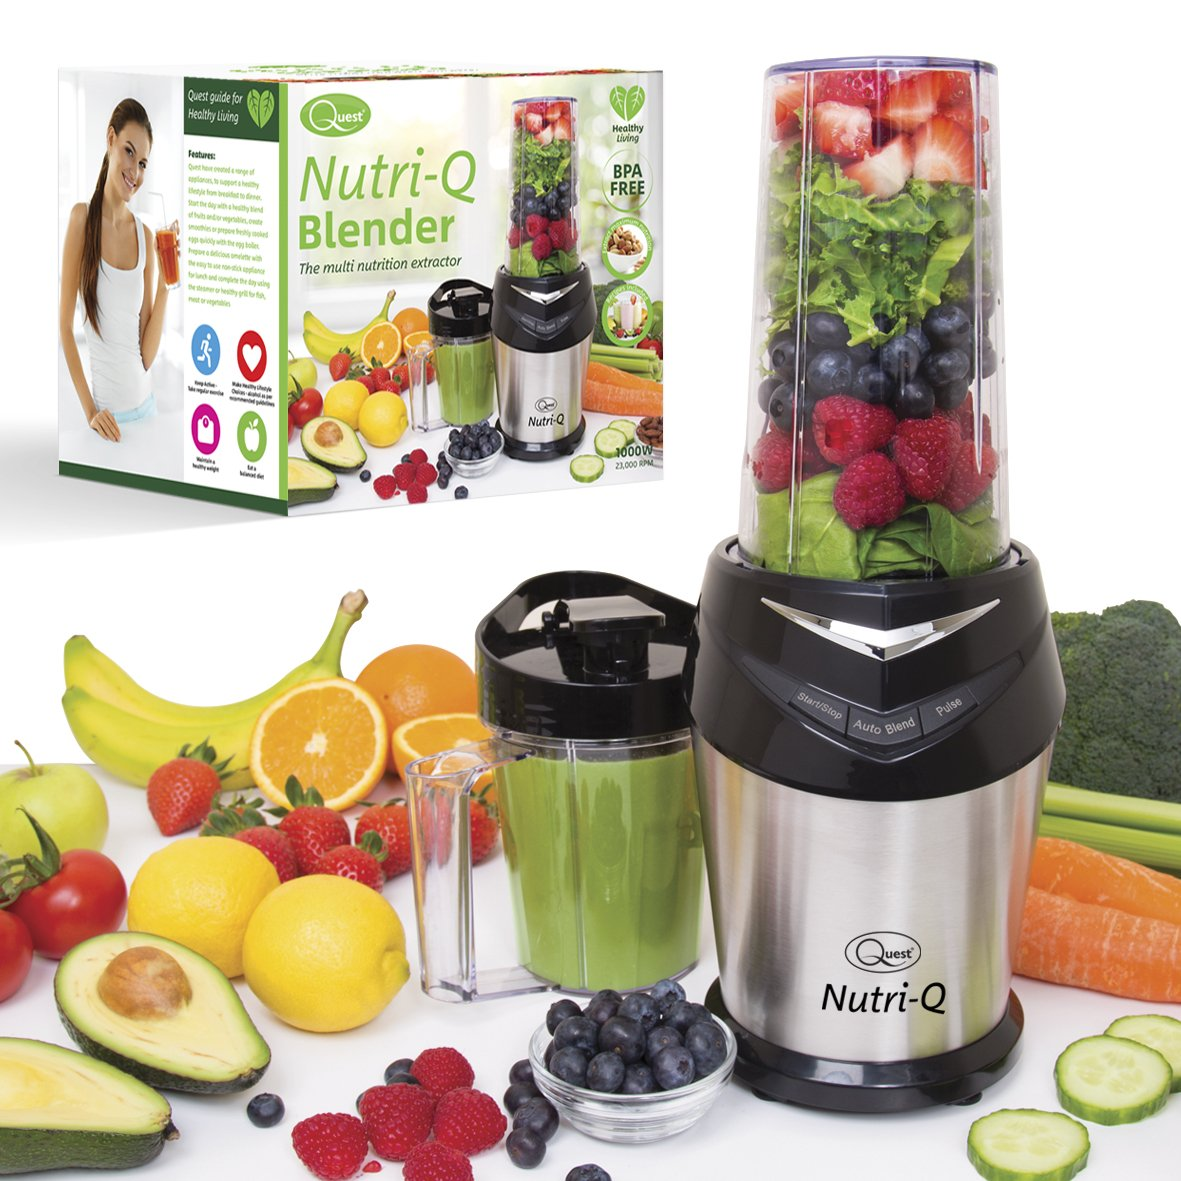 Nutri-Q by Quest 34200 Twin Cup Personal Multi Nutrition Extractor Blender, 1000 W Benross Marketing